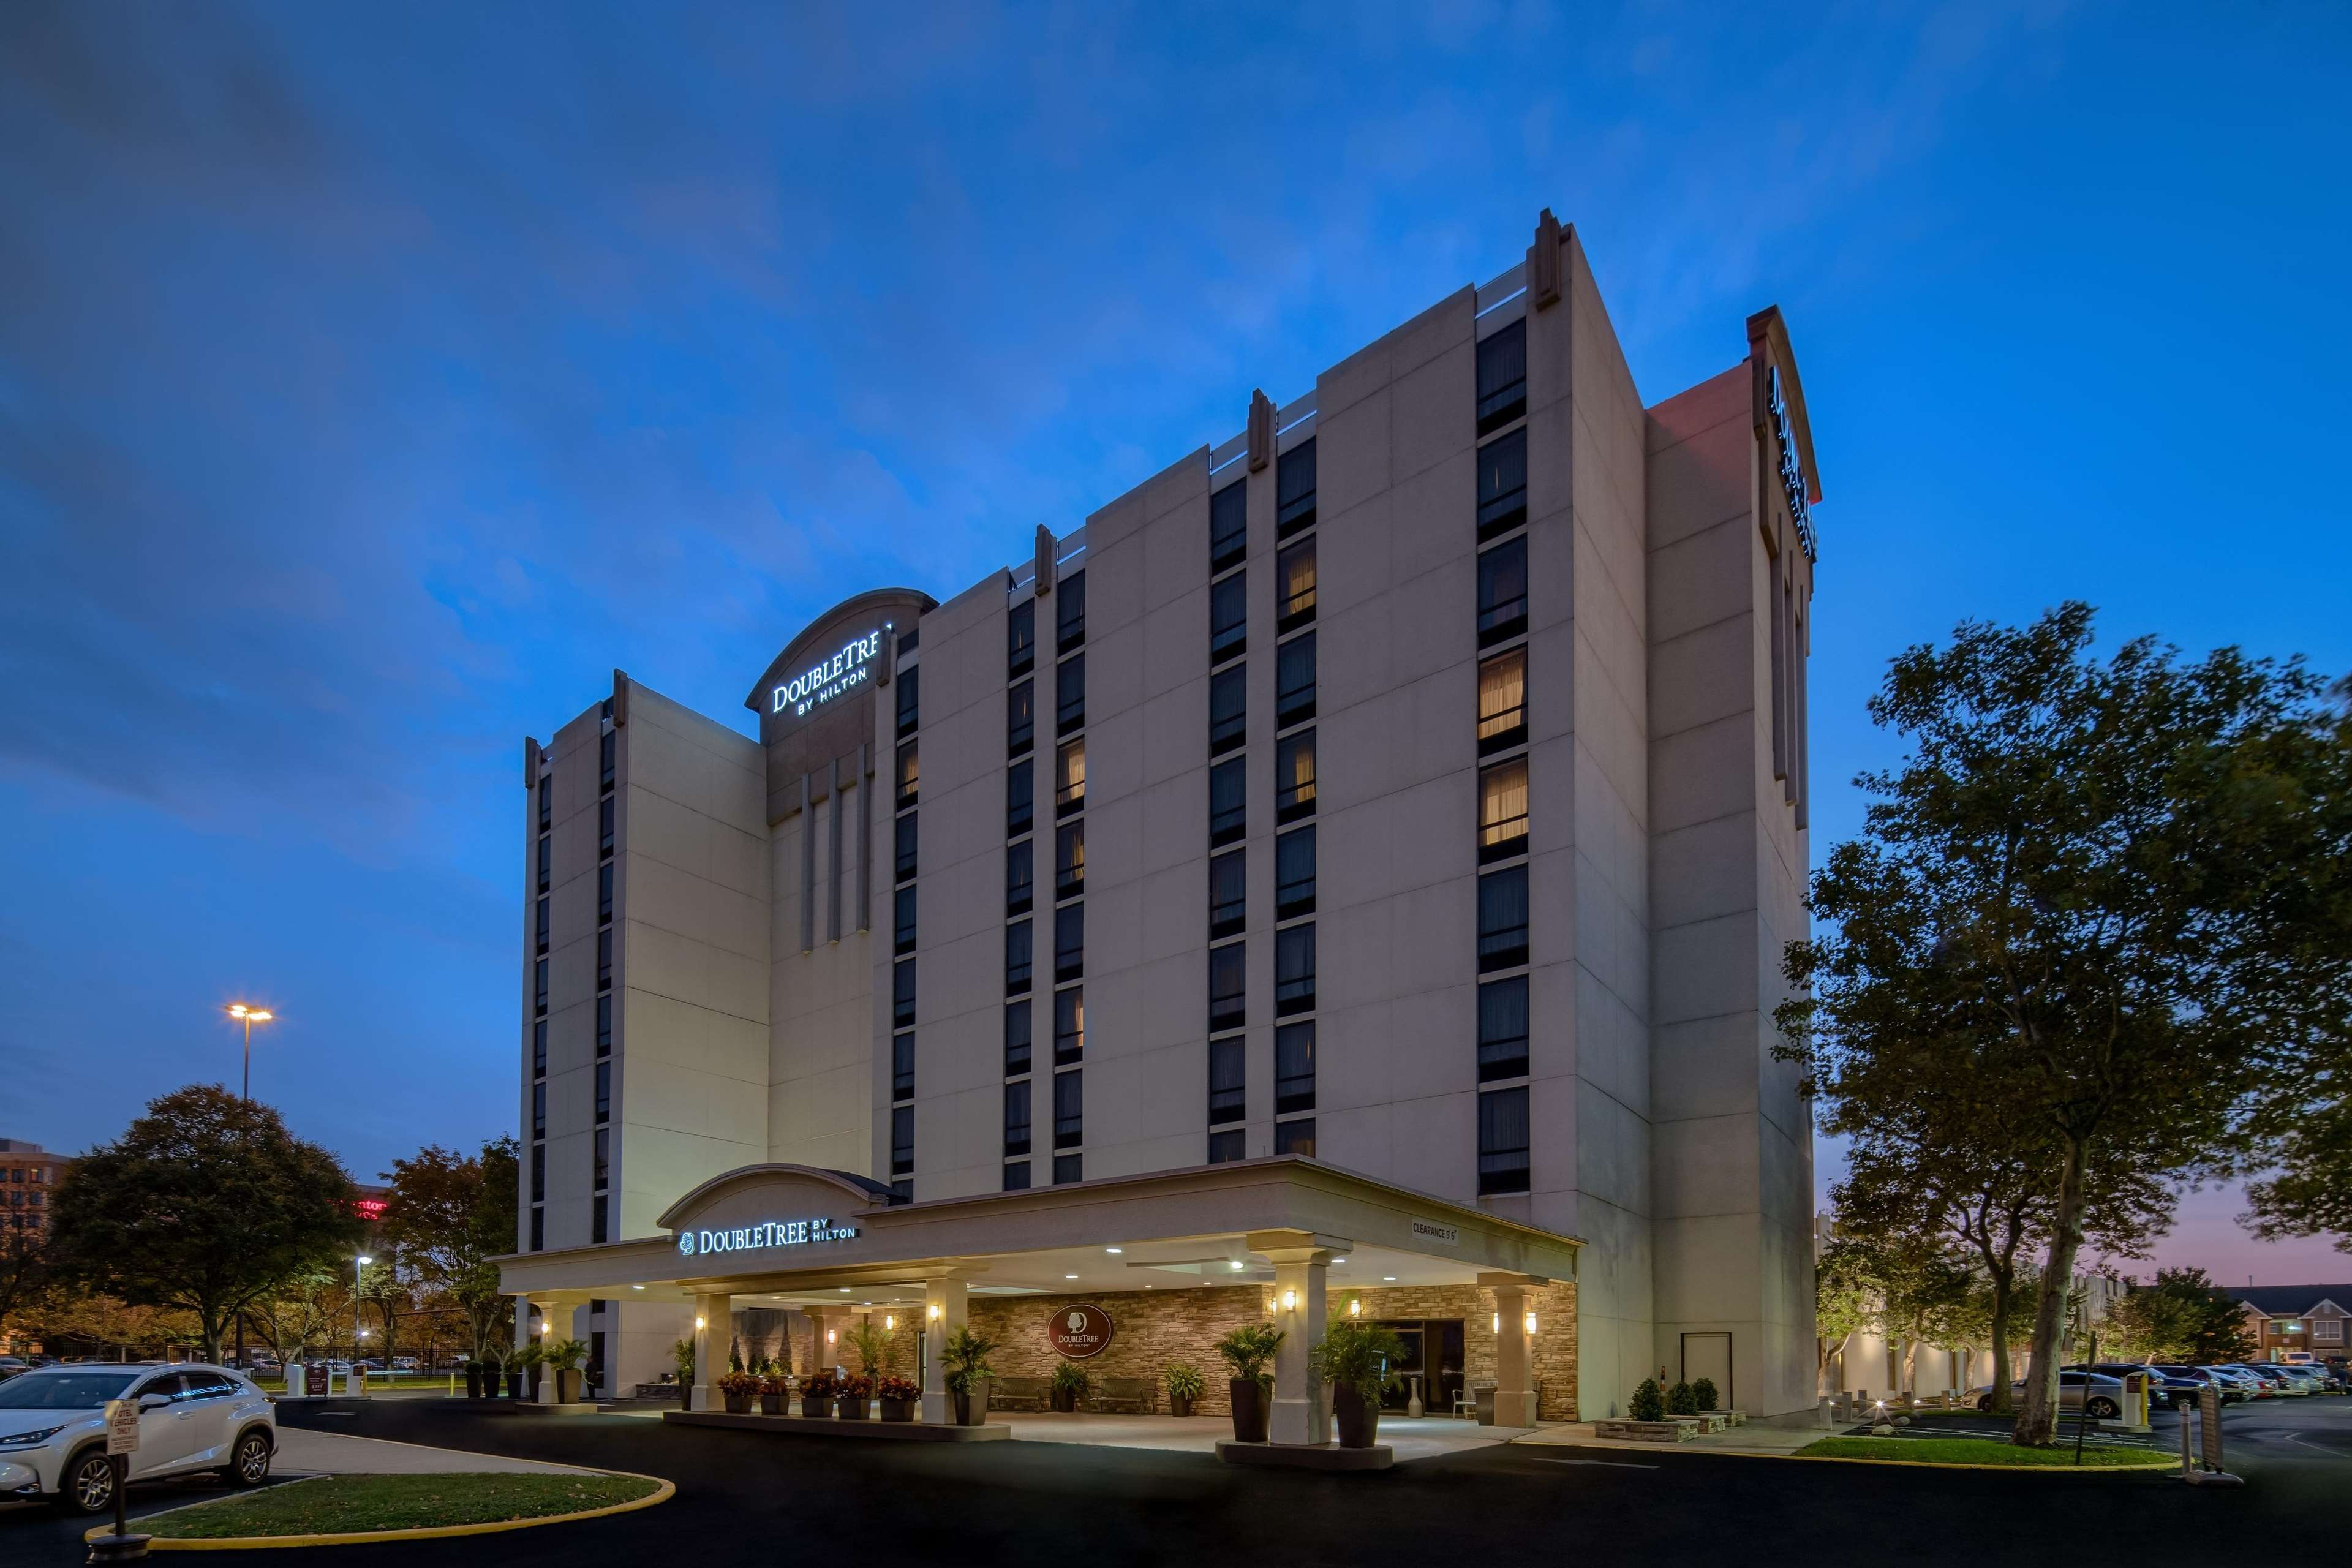 doubletree by hilton hotel philadelphia airport coupons. Black Bedroom Furniture Sets. Home Design Ideas